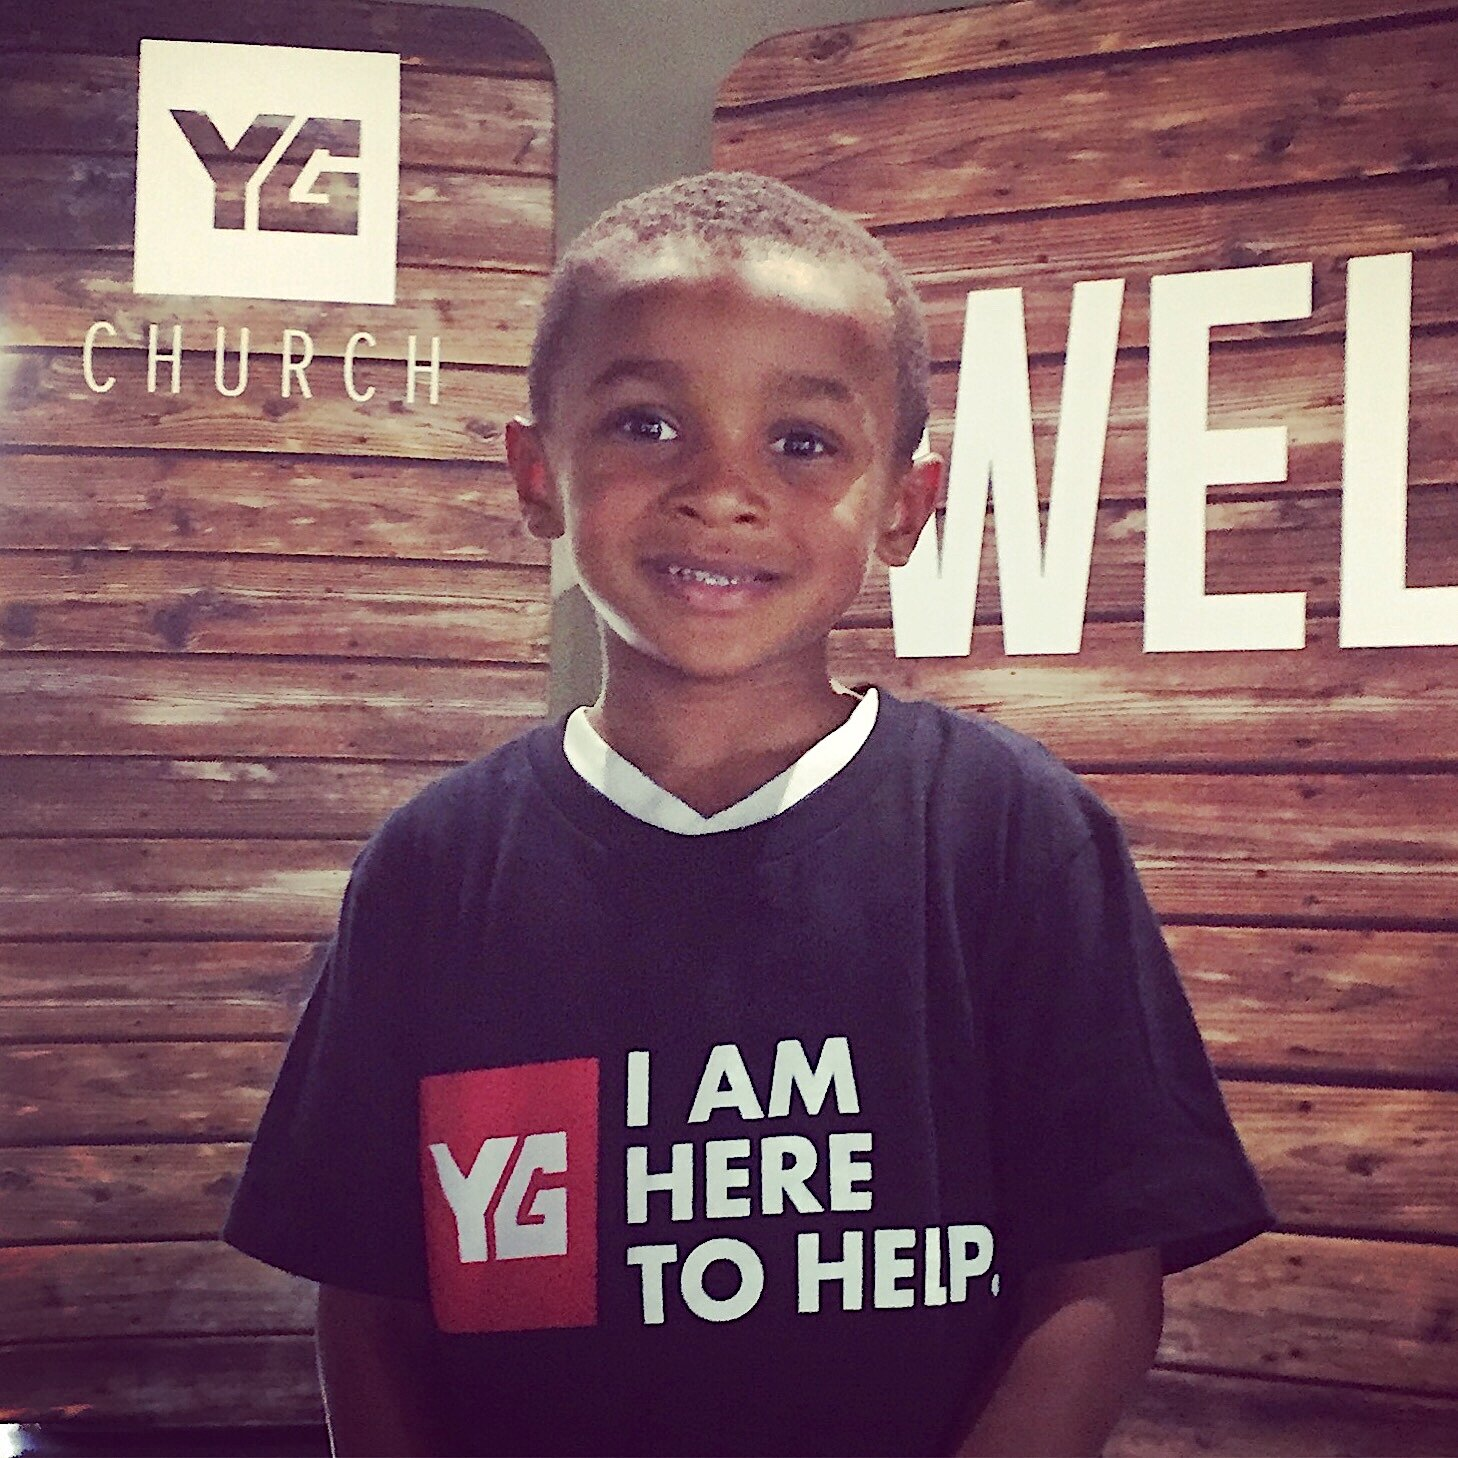 """SO JOIN JORDAN AND OTHER YG VOLUNTEERS. SIGN UP TODAY!   So we invite you: Student, Parent, Young Couple, Senior Citizen, Grade Schooler, Collegian, Young Family, Teacher, Young Professional, Youth,  everyone  to volunteer with Younger Generation Church. Join us as we look to make a difference for the cause of Christ and build great relationships with each other. Volunteering is a great way to """"Be YG"""" and """"Be Jesus.""""  Sign up today and see you Saturday 1:00PM."""